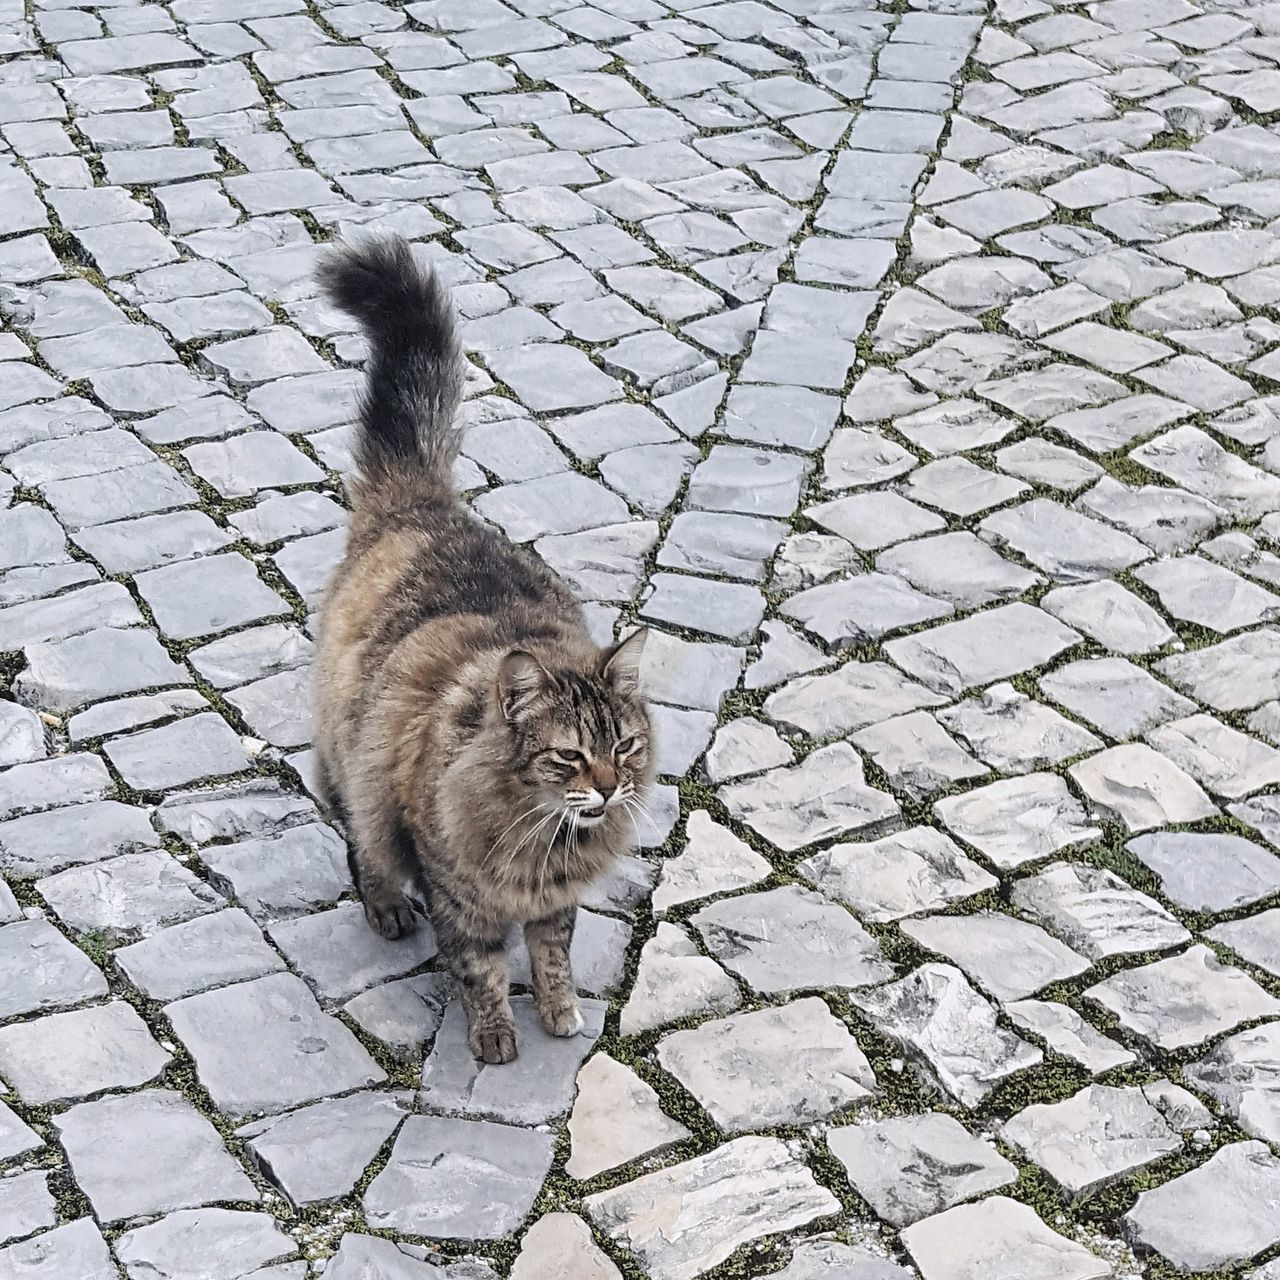 domestic cat, cobblestone, feline, animal themes, pets, domestic animals, street, one animal, mammal, outdoors, day, no people, looking at camera, portrait